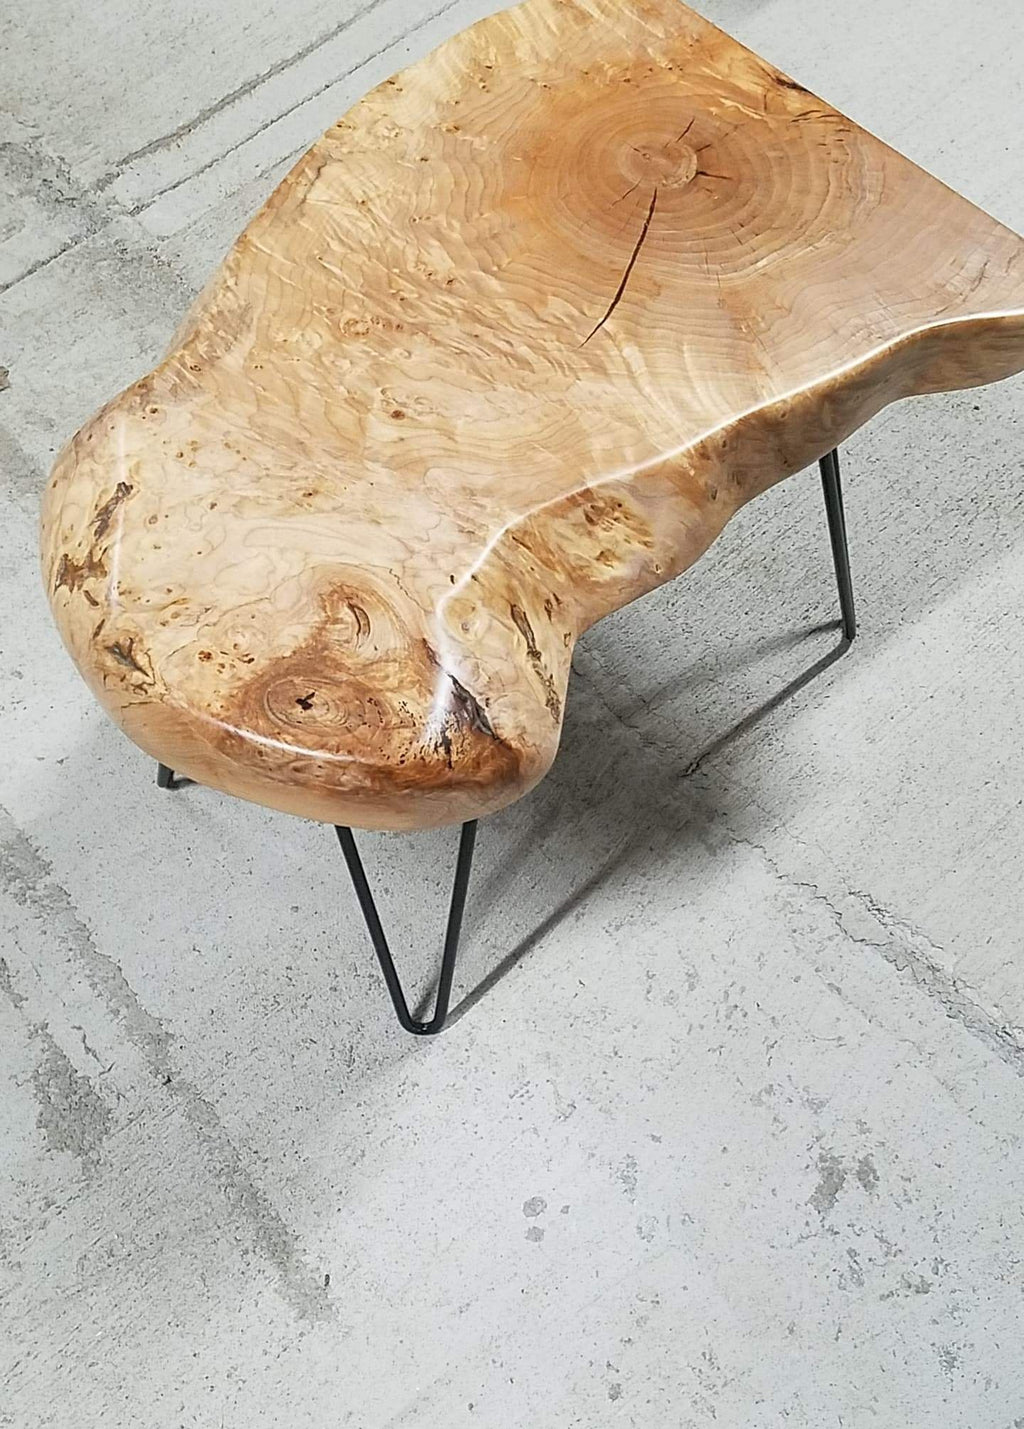 Maple Burl End Table w/ Hairpin Legs - free shipping to U.S